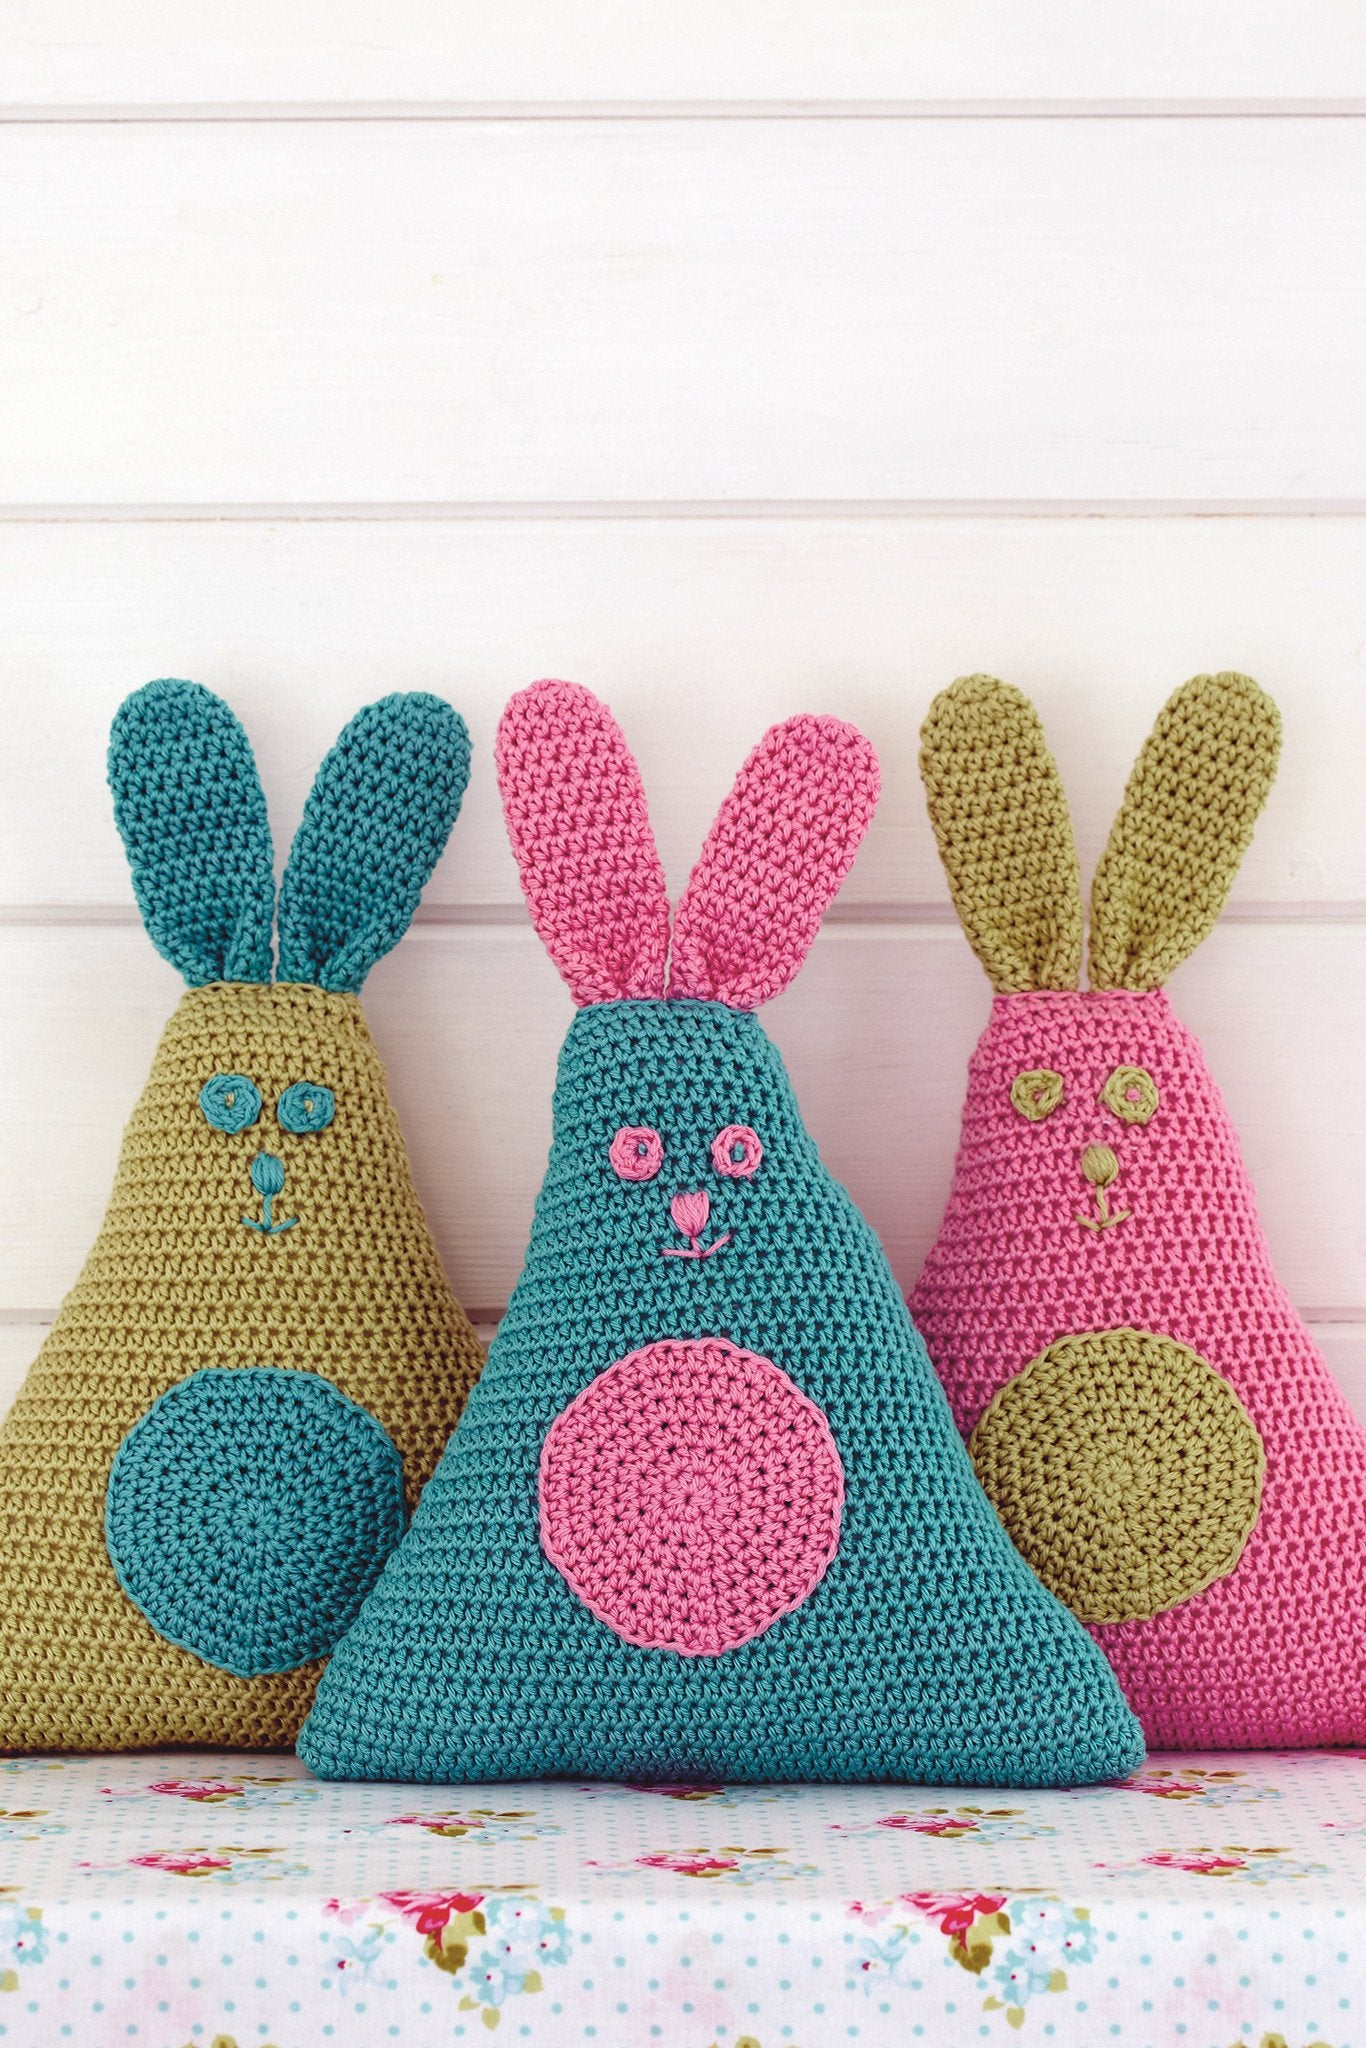 Easter bunnies crochet pattern the knitting network easter bunnies crochet pattern ccuart Choice Image